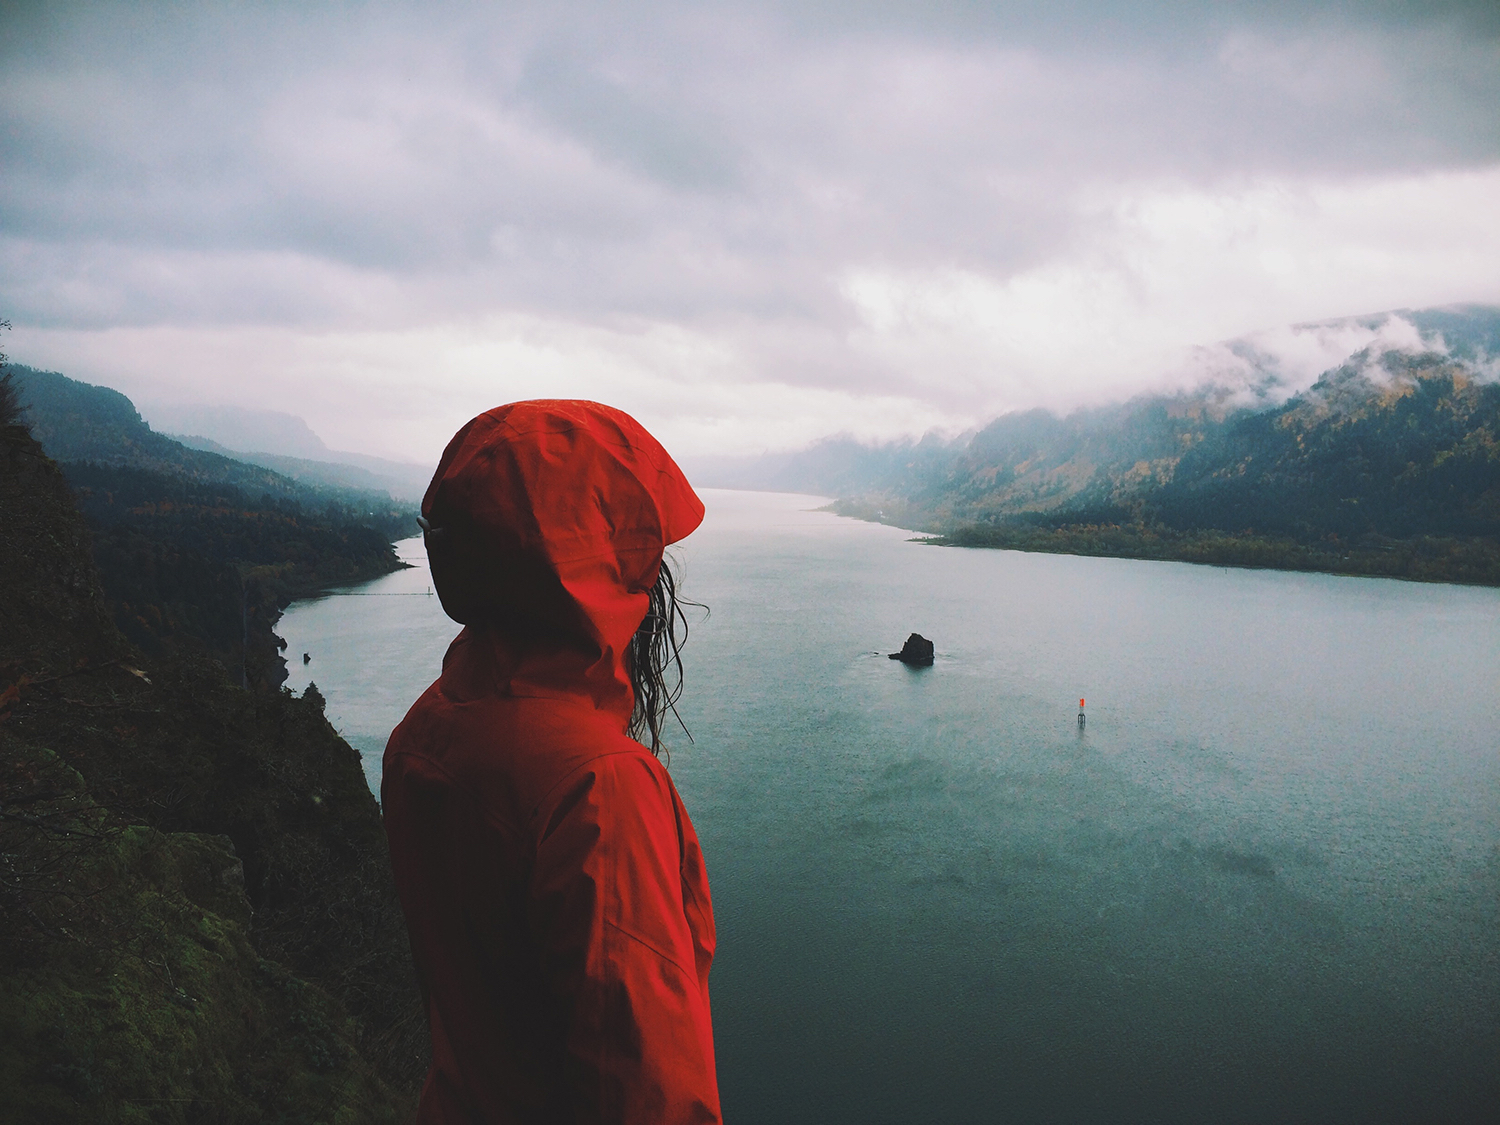 Girl in Red Jacket Looking Over Mountains and Water